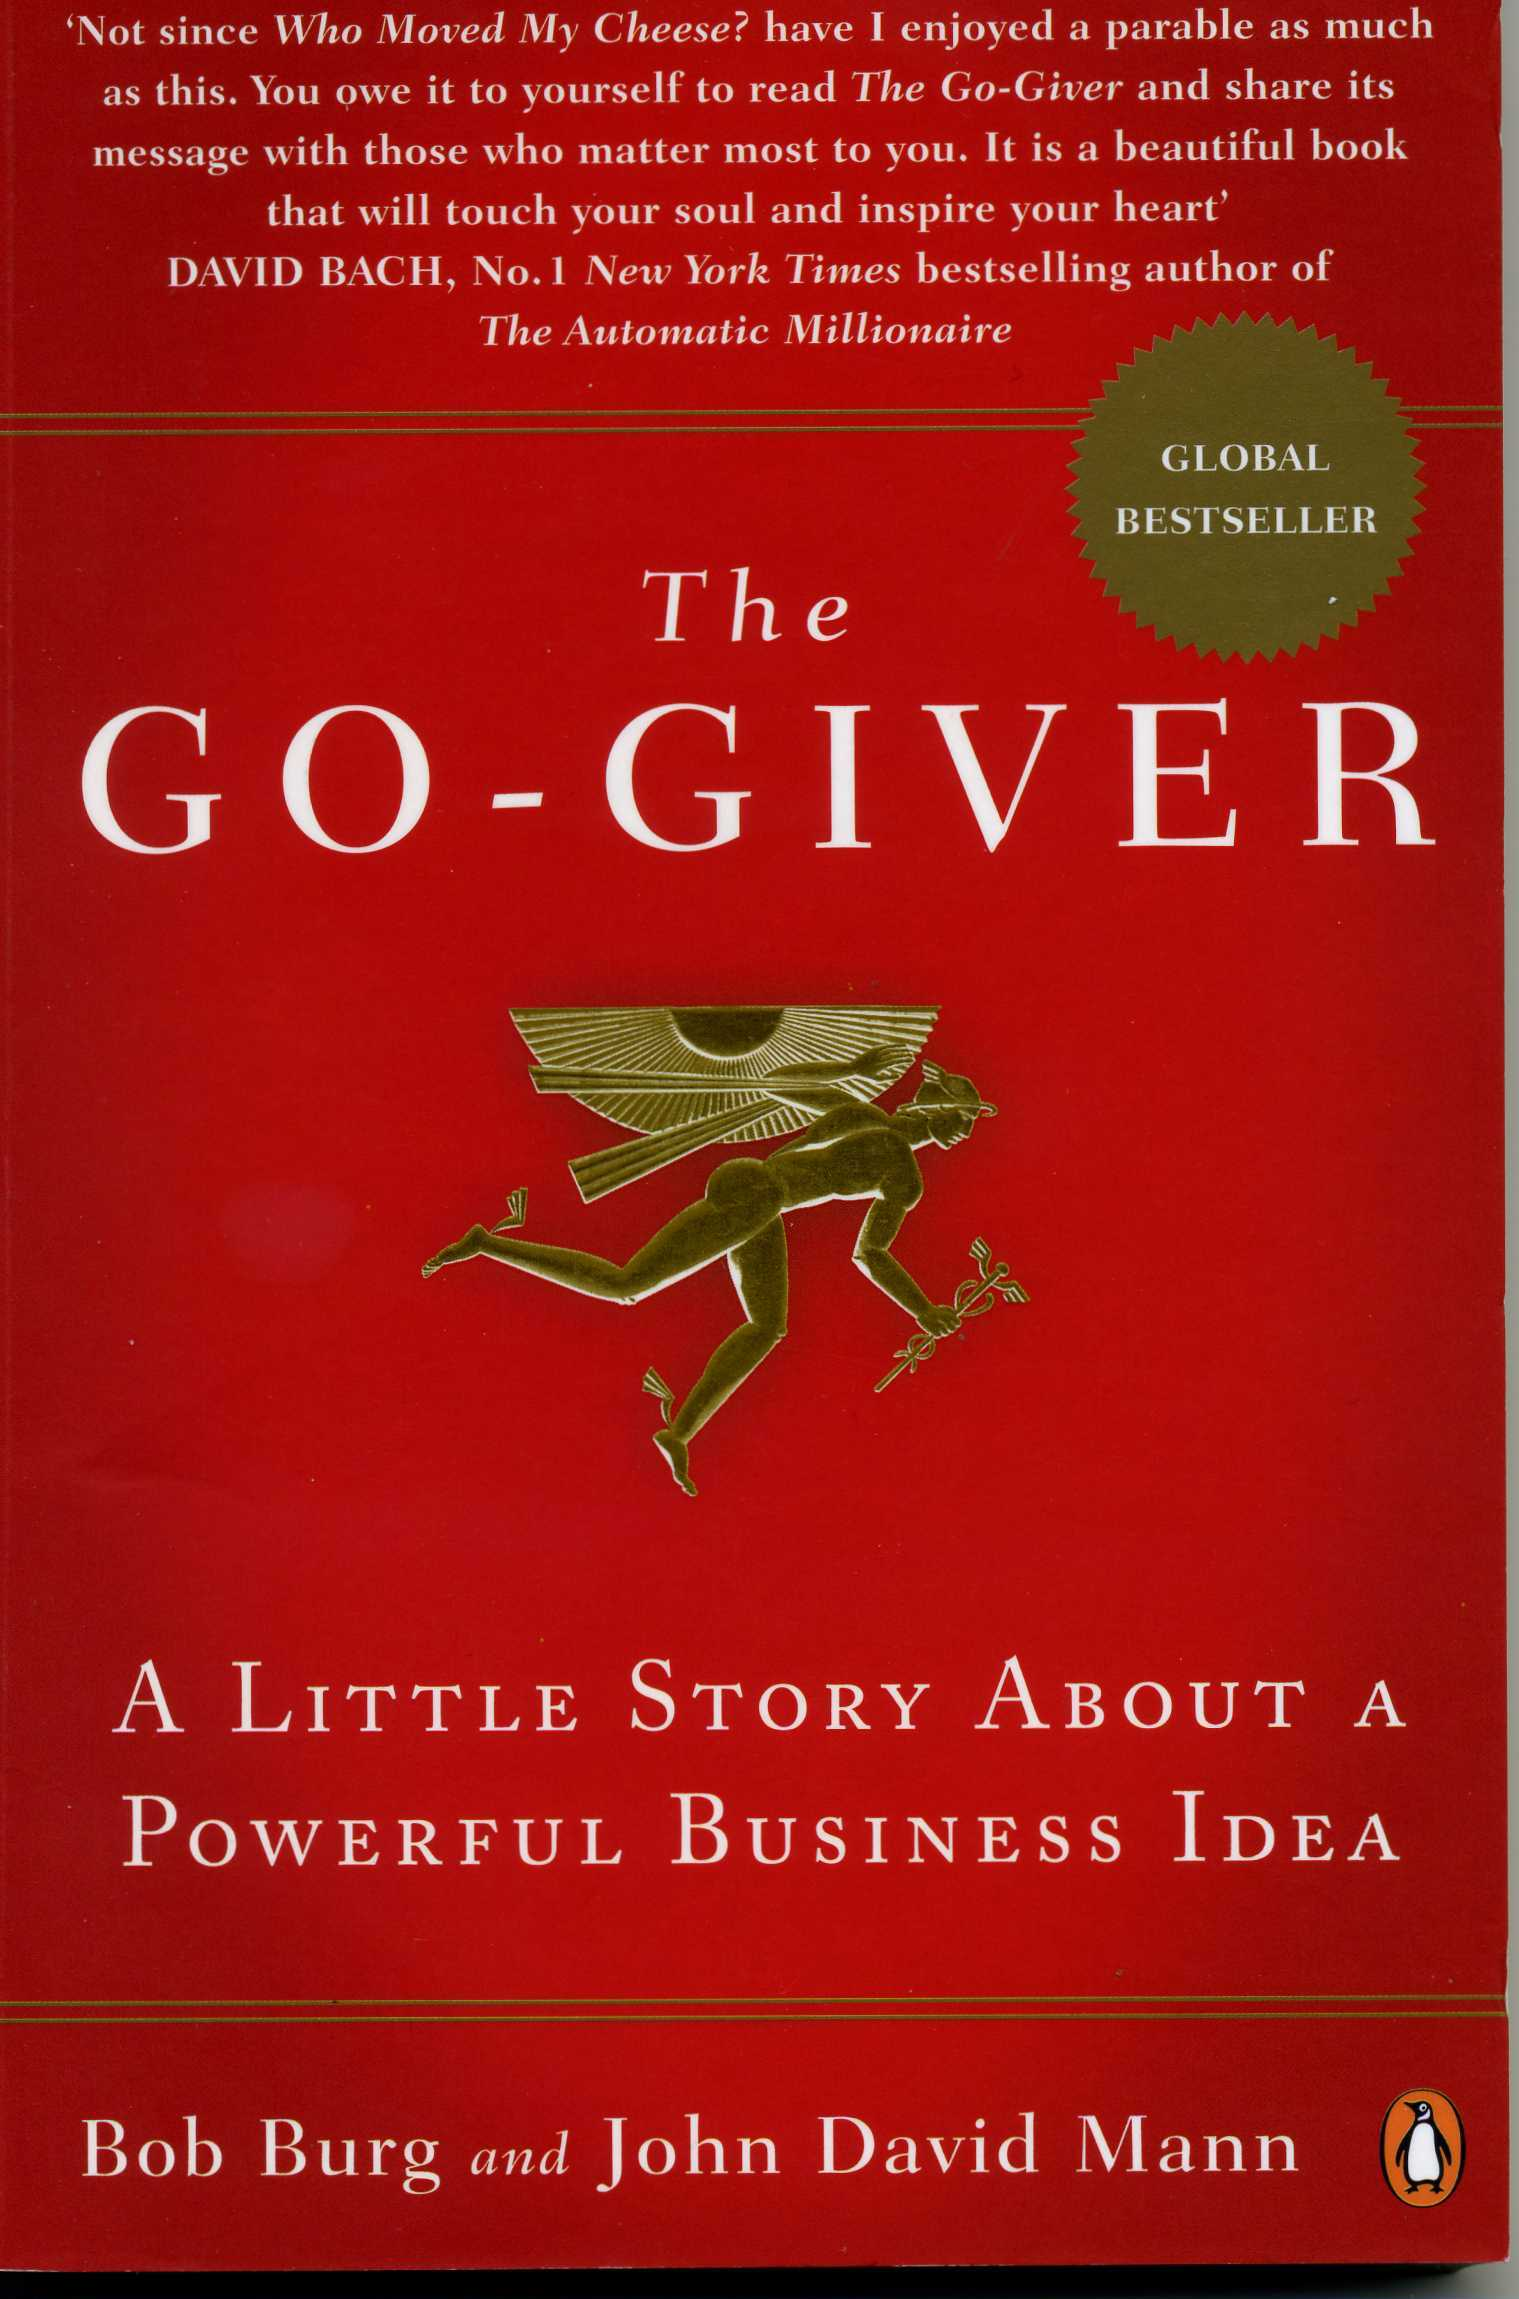 The Go-Giver cover.jpg